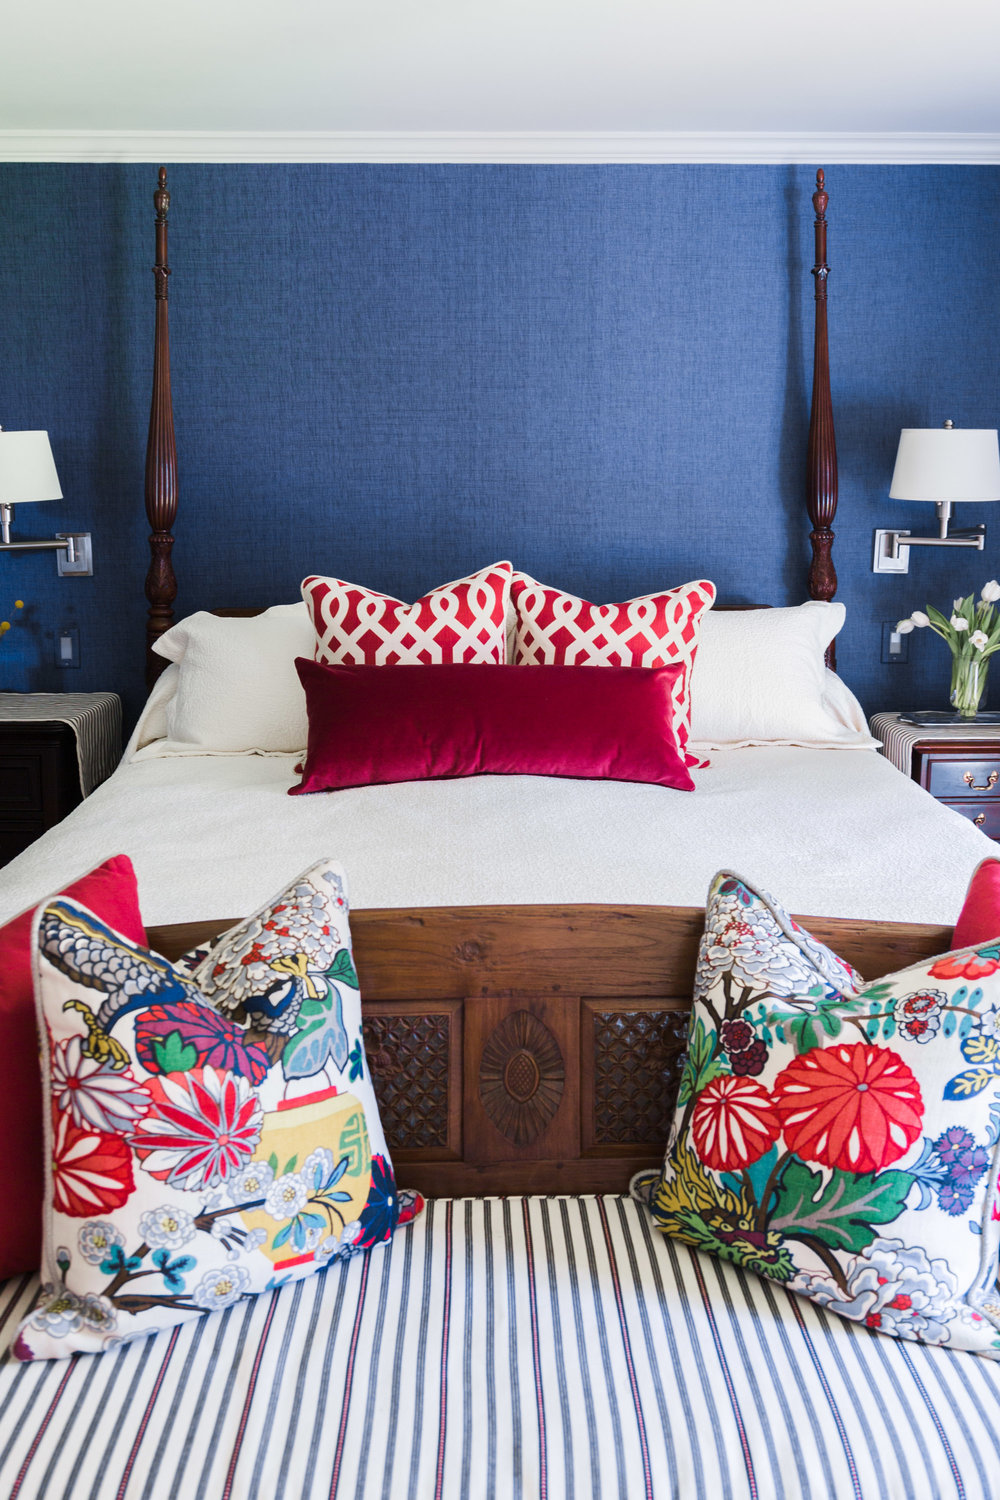 Bedroom with four poster bed and navy grasscloth walls Designer: Carla Aston